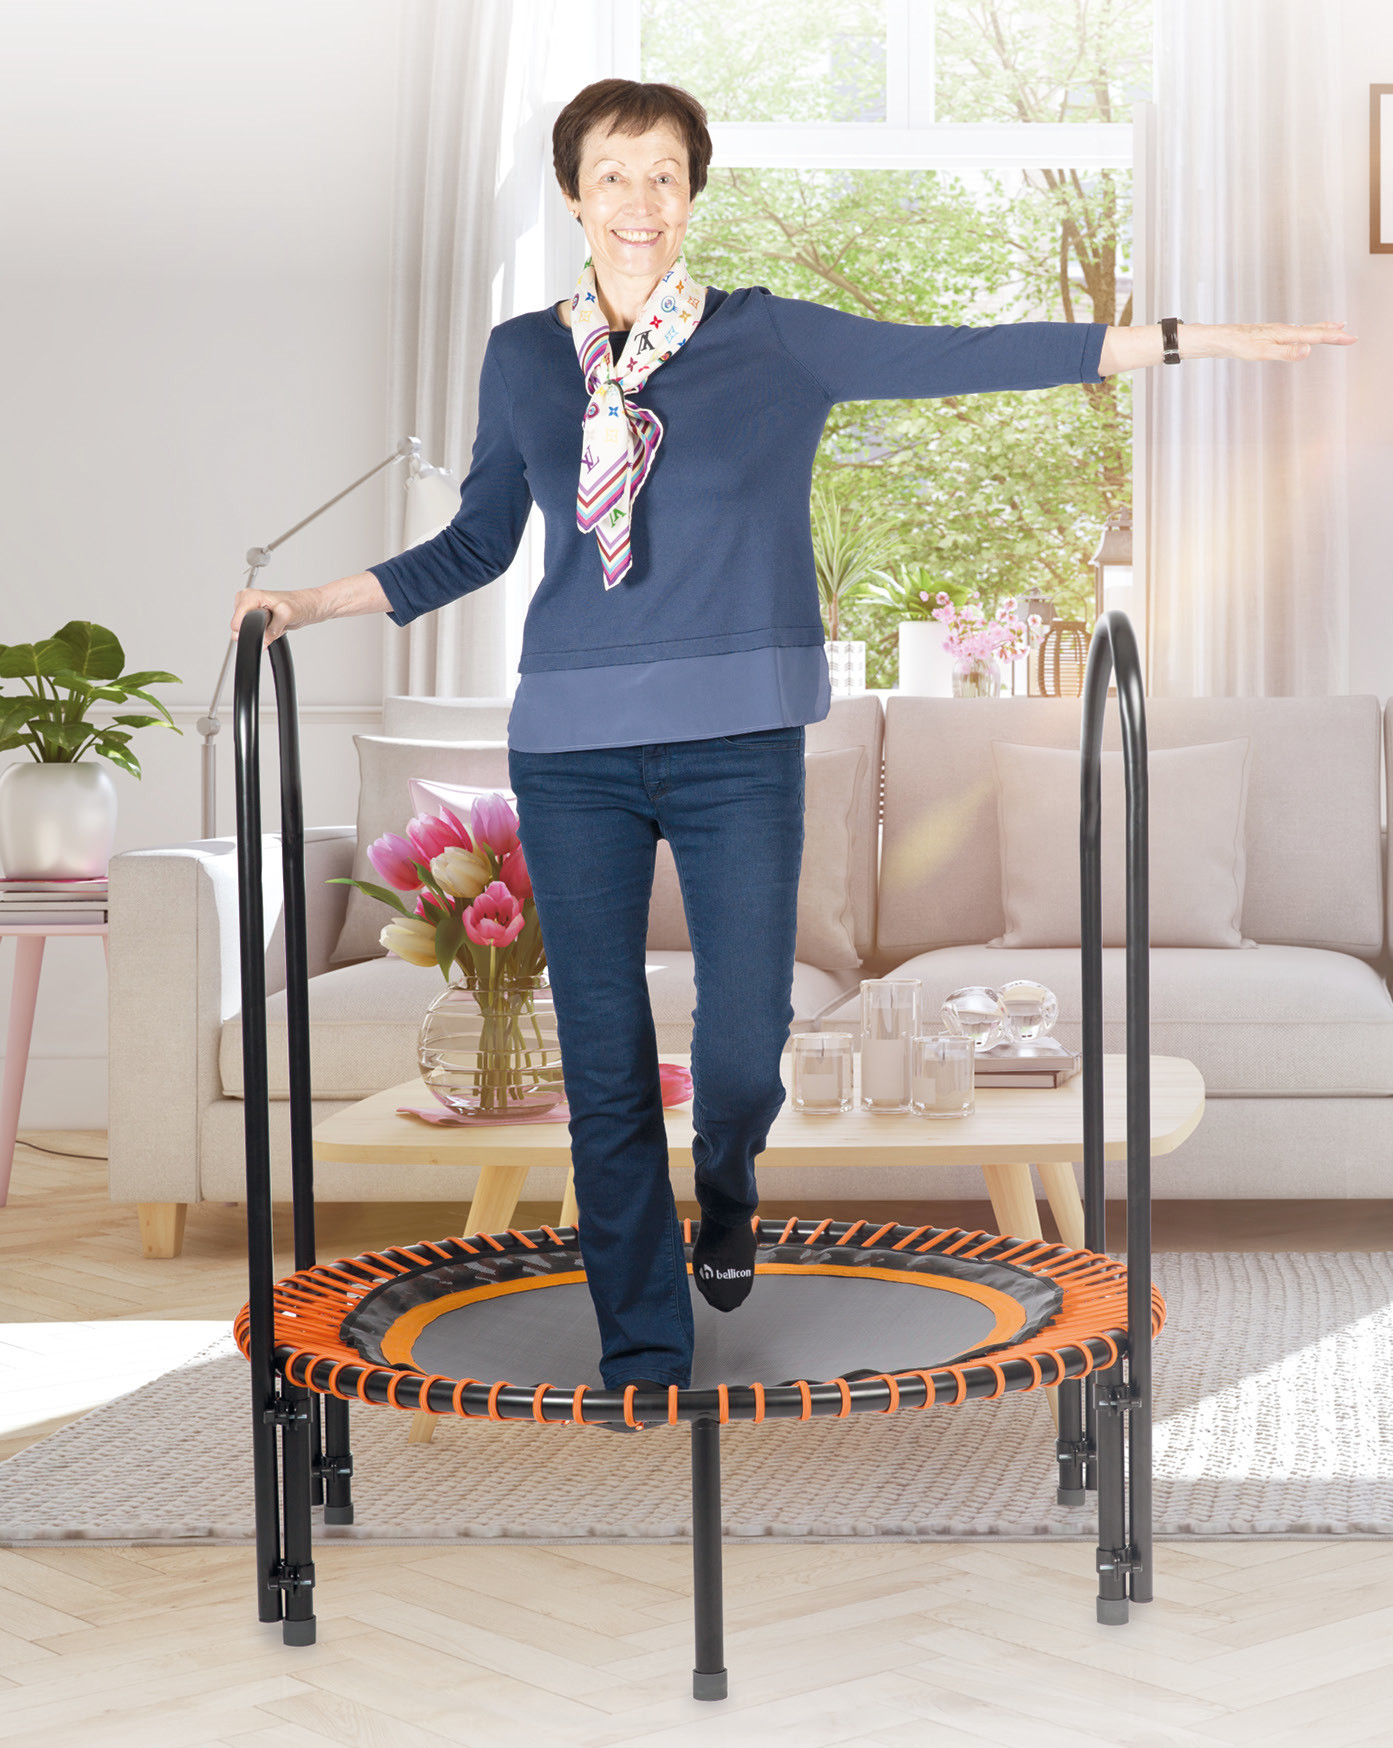 Arthrosis: improve your mobility with the trampoline